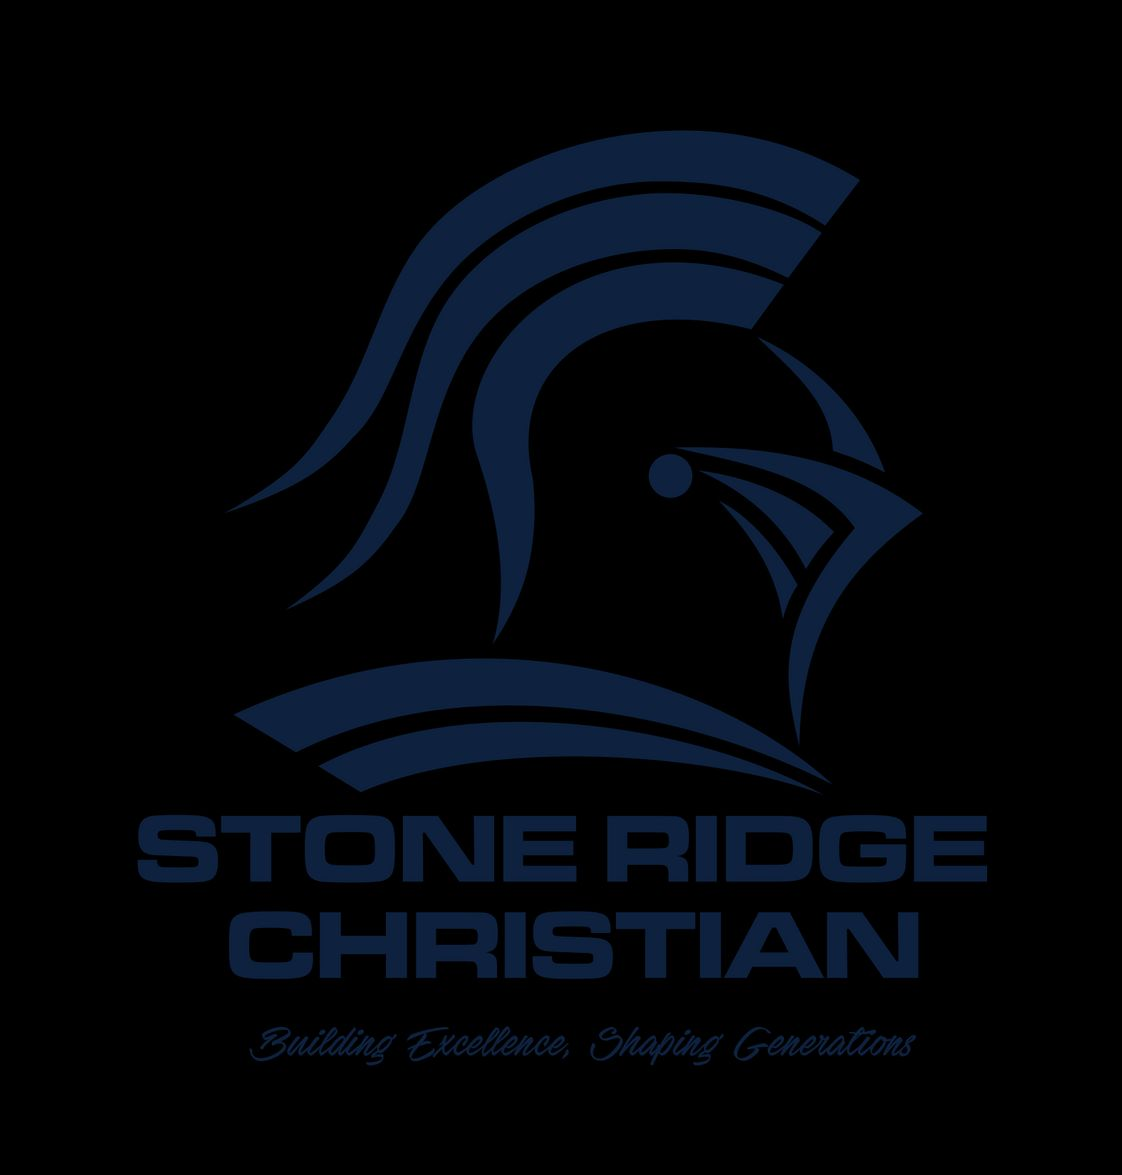 Stone Ridge Christian School Photo